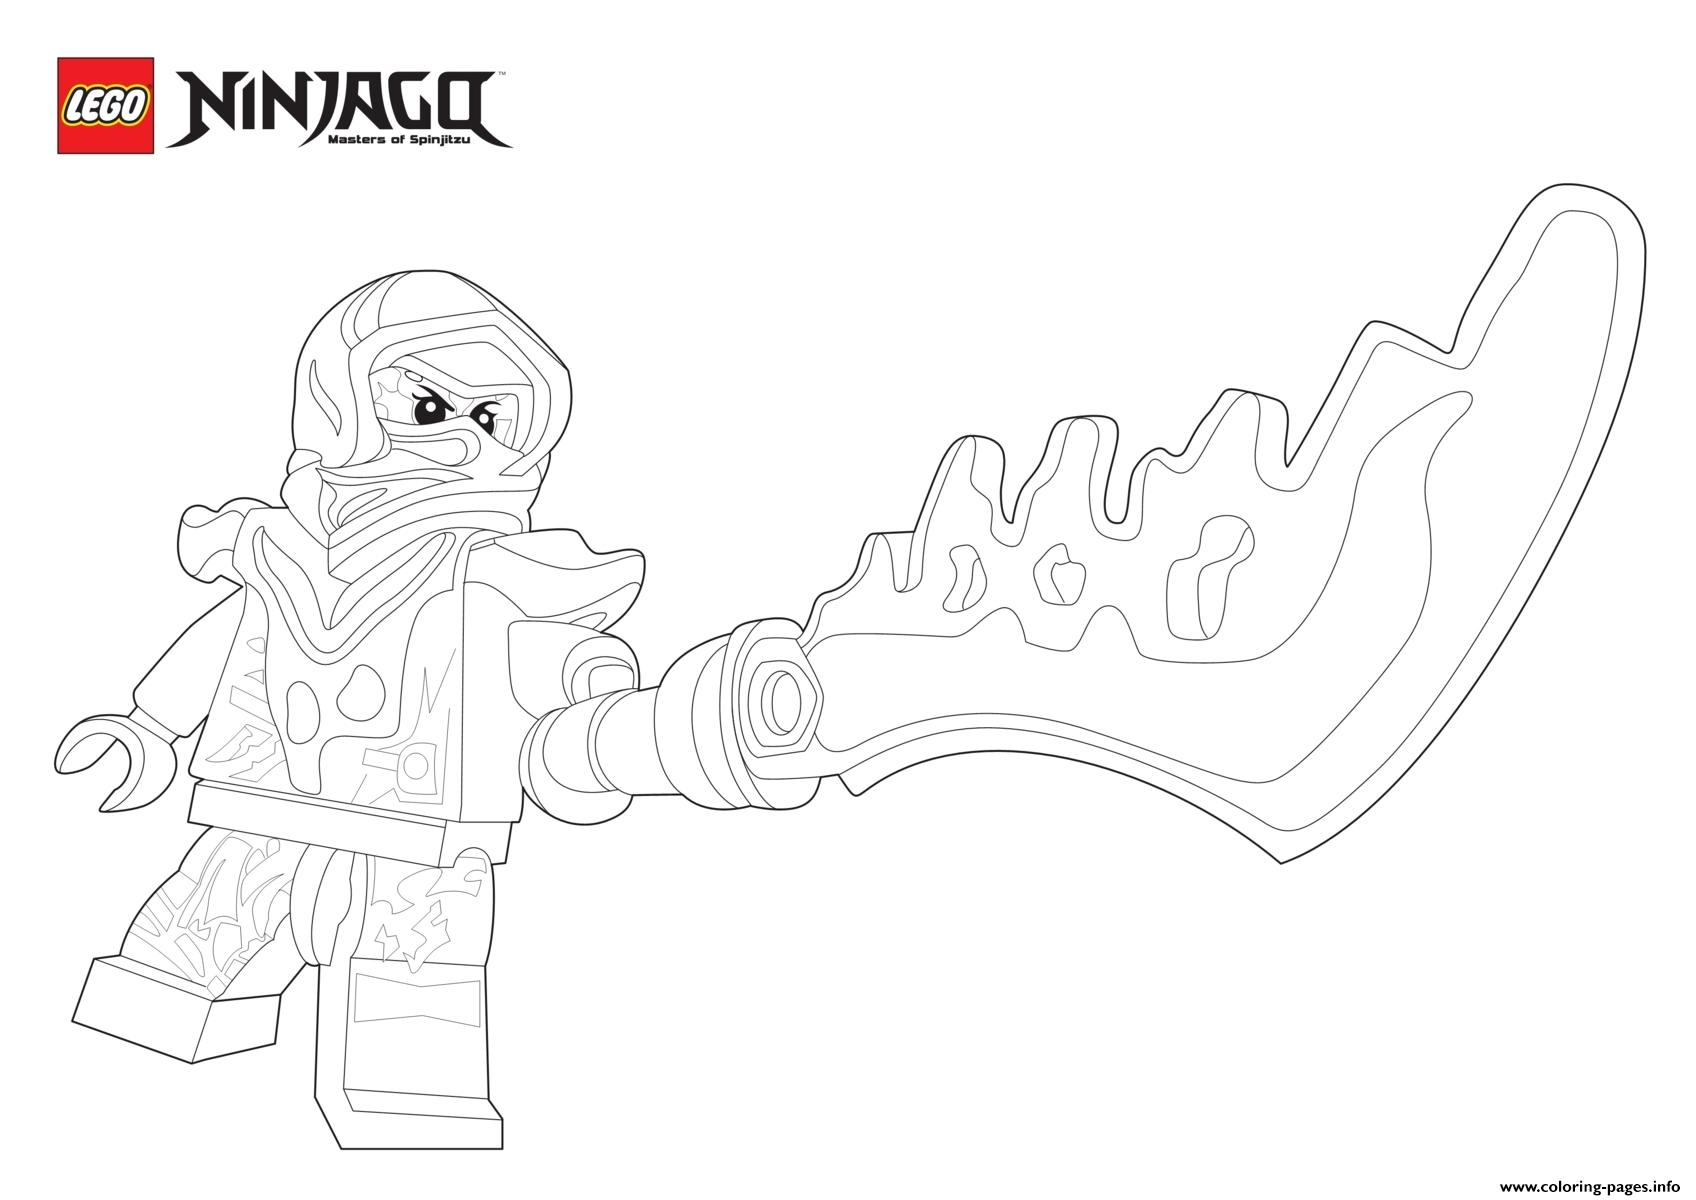 Nya Ninjago Sword coloring pages